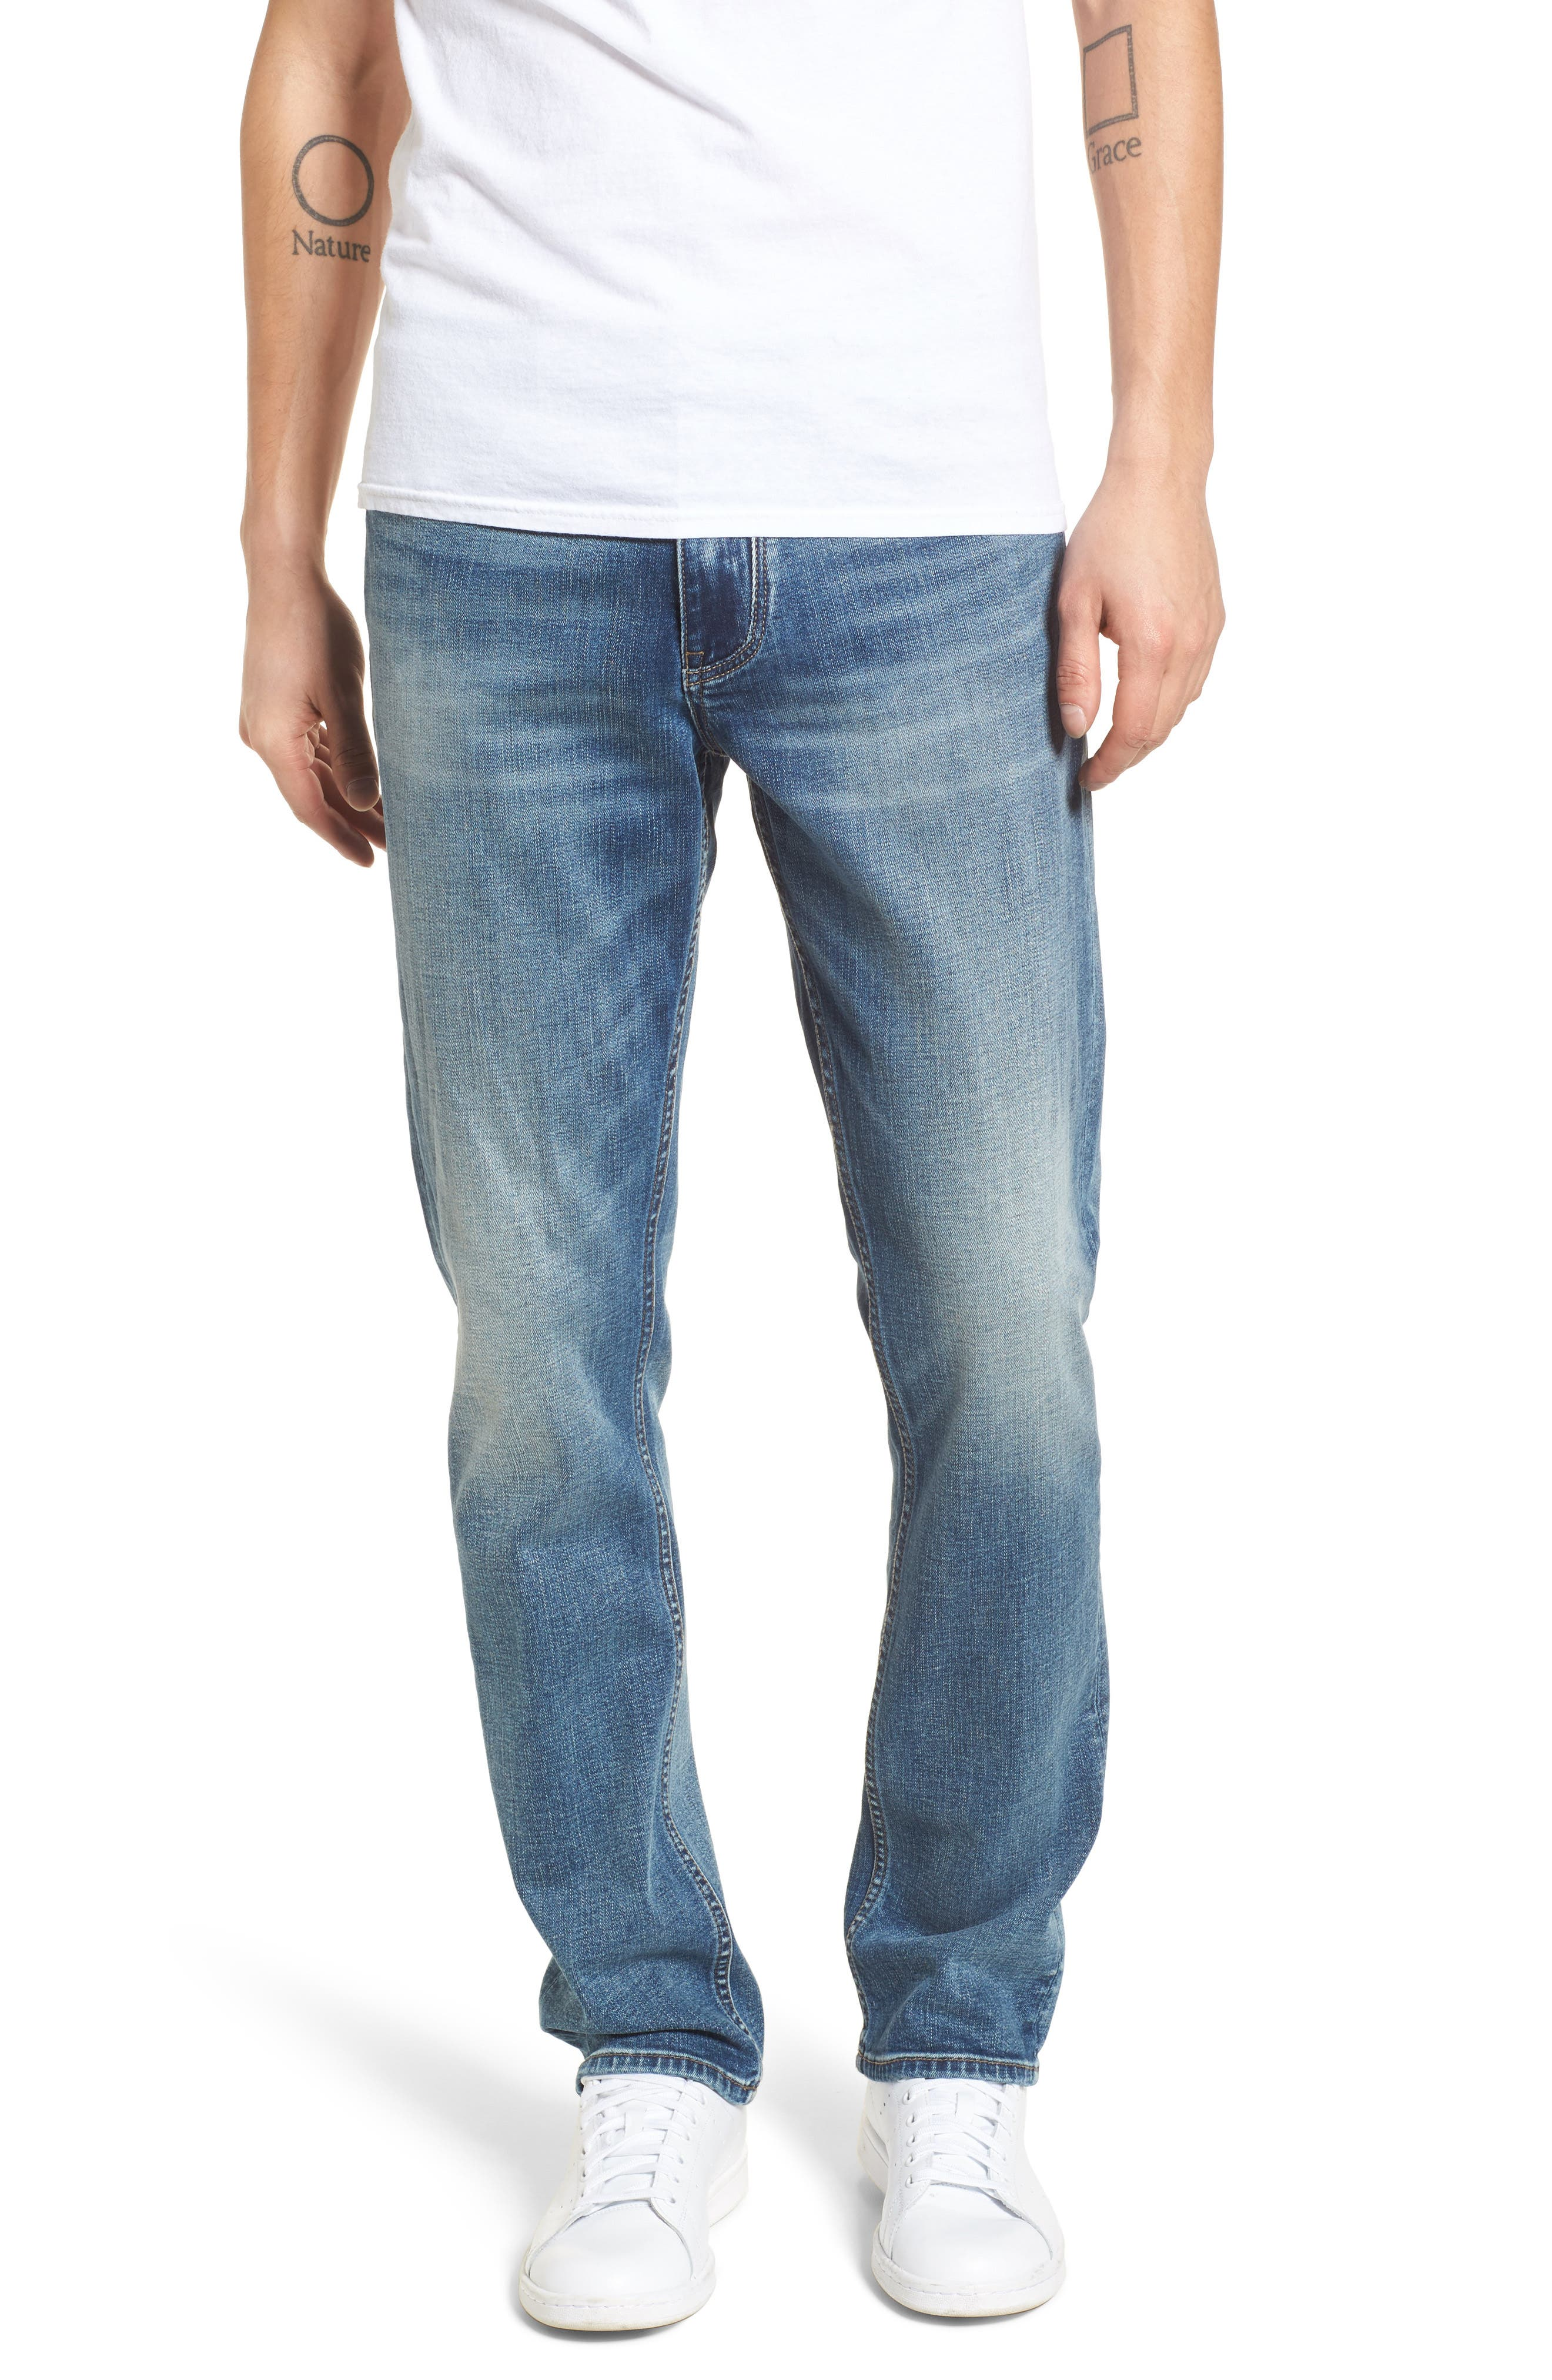 Wooster Slim Fit Jeans,                         Main,                         color, 400